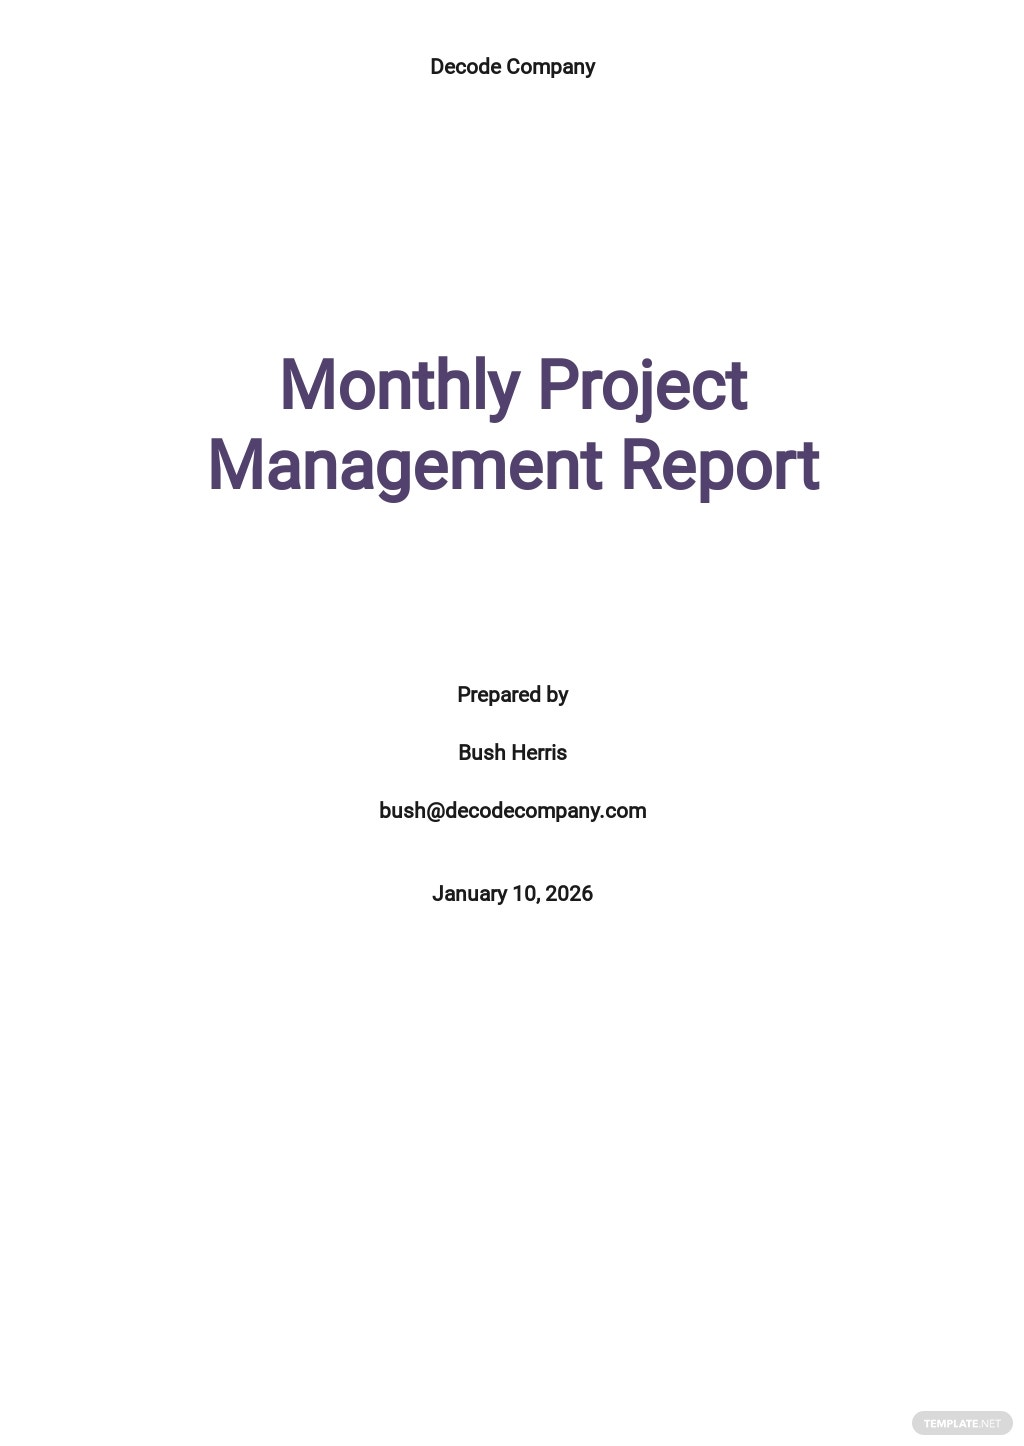 Monthly Project Management Report Template